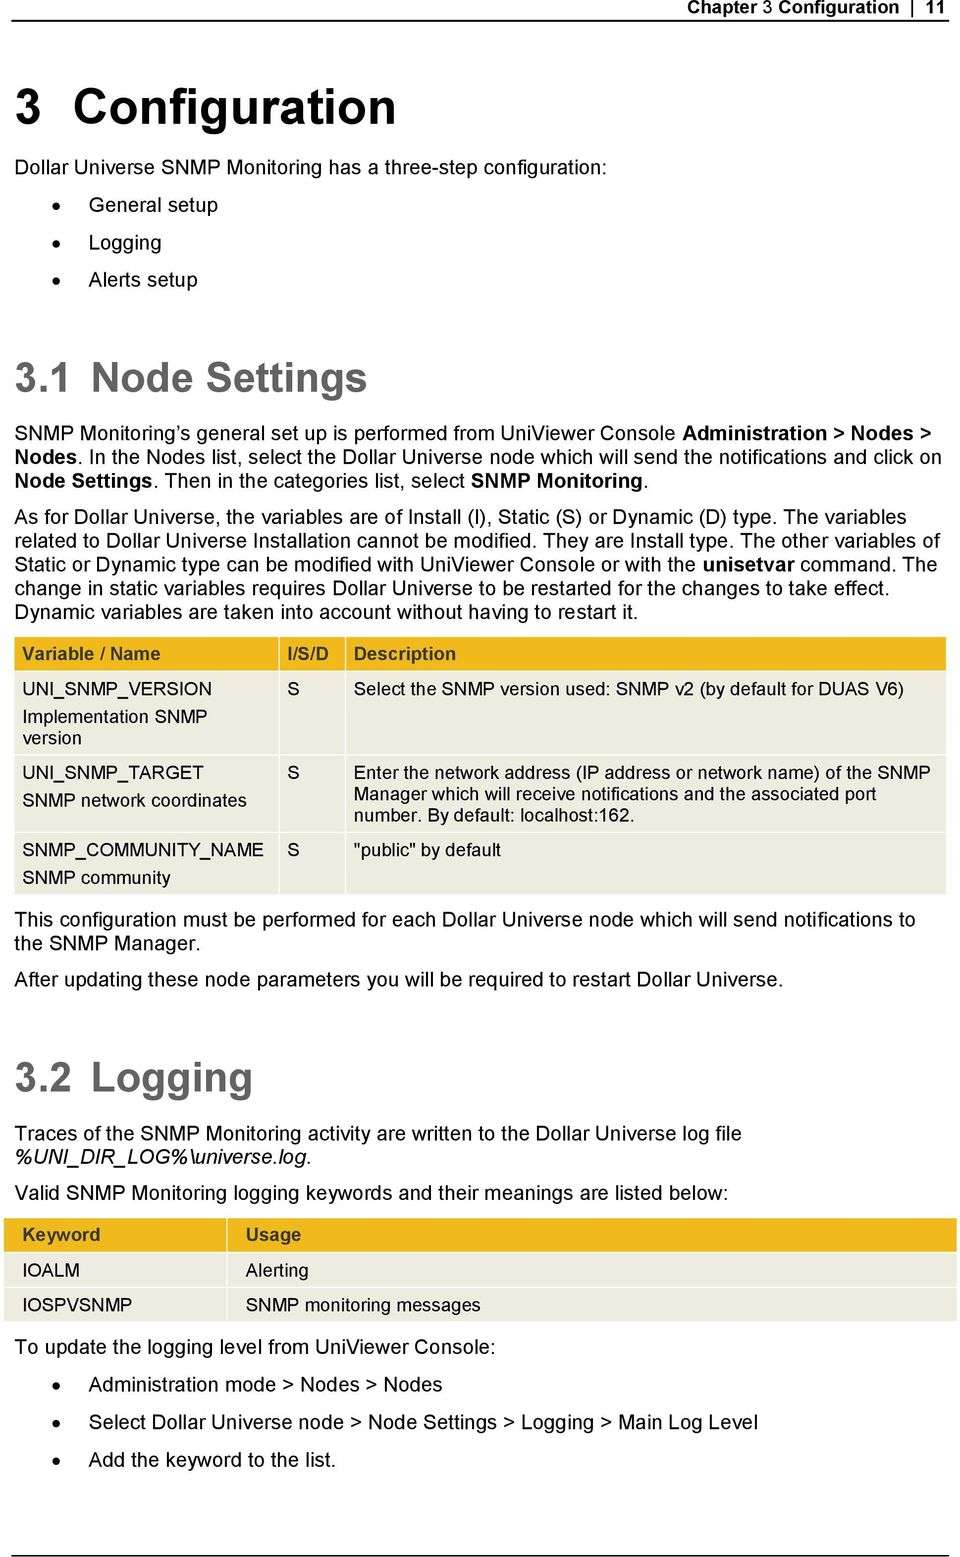 Dollar Universe SNMP Monitoring User Guide - PDF